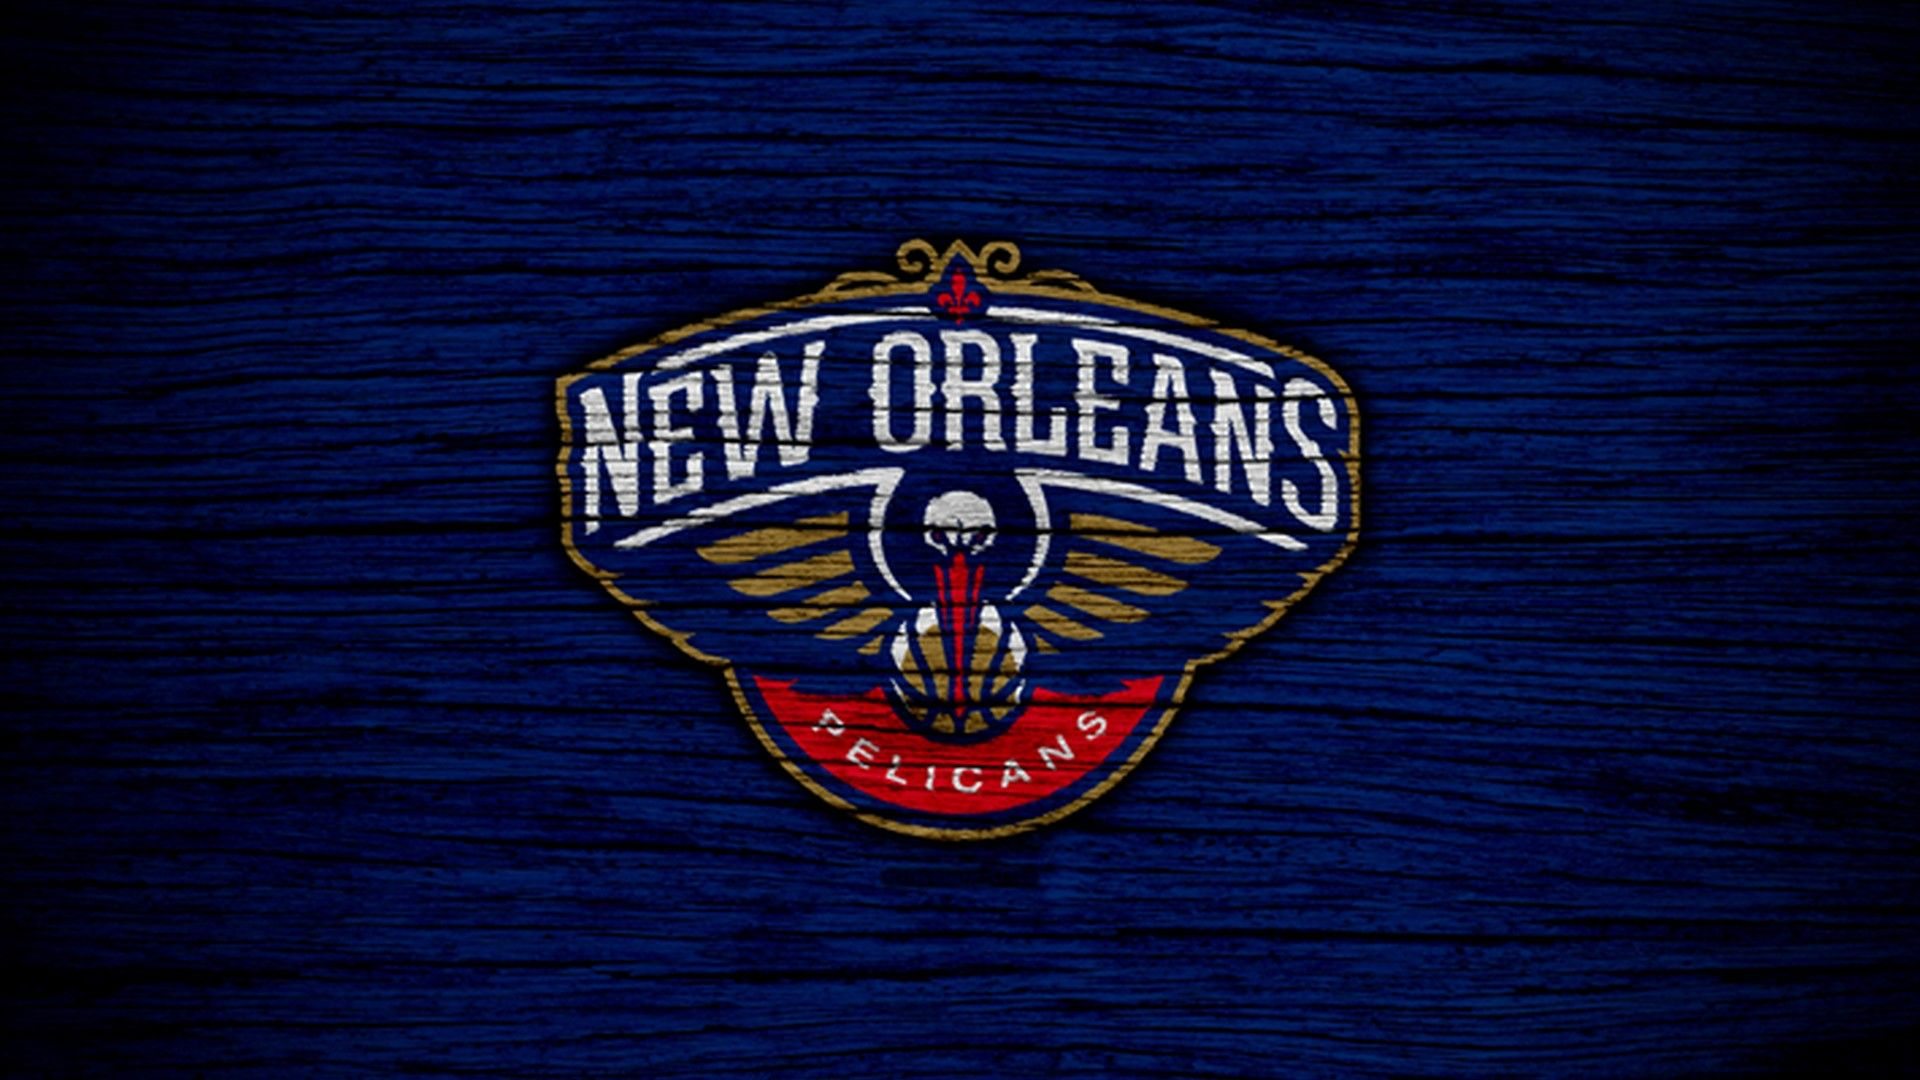 Backgrounds New Orleans Pelicans Hd New Orleans Pelicans